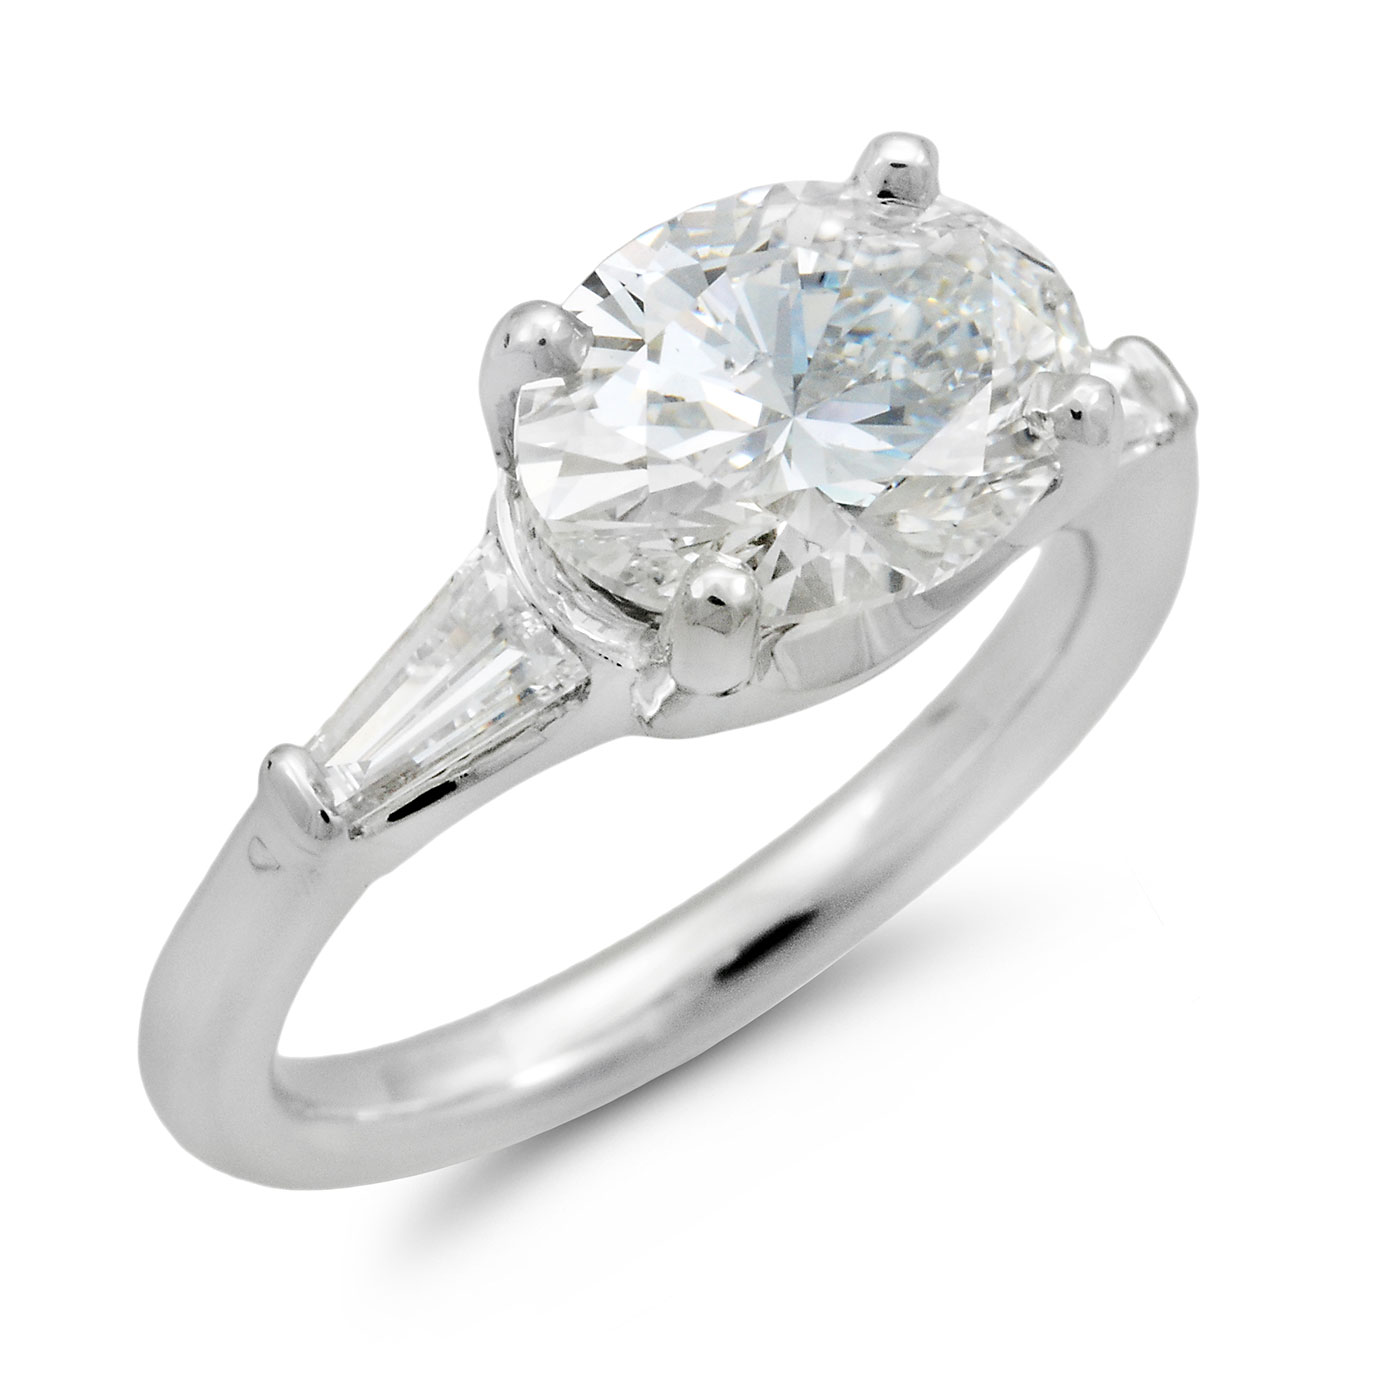 C6612 Saddle Set Oval Diamond Engagement Ring